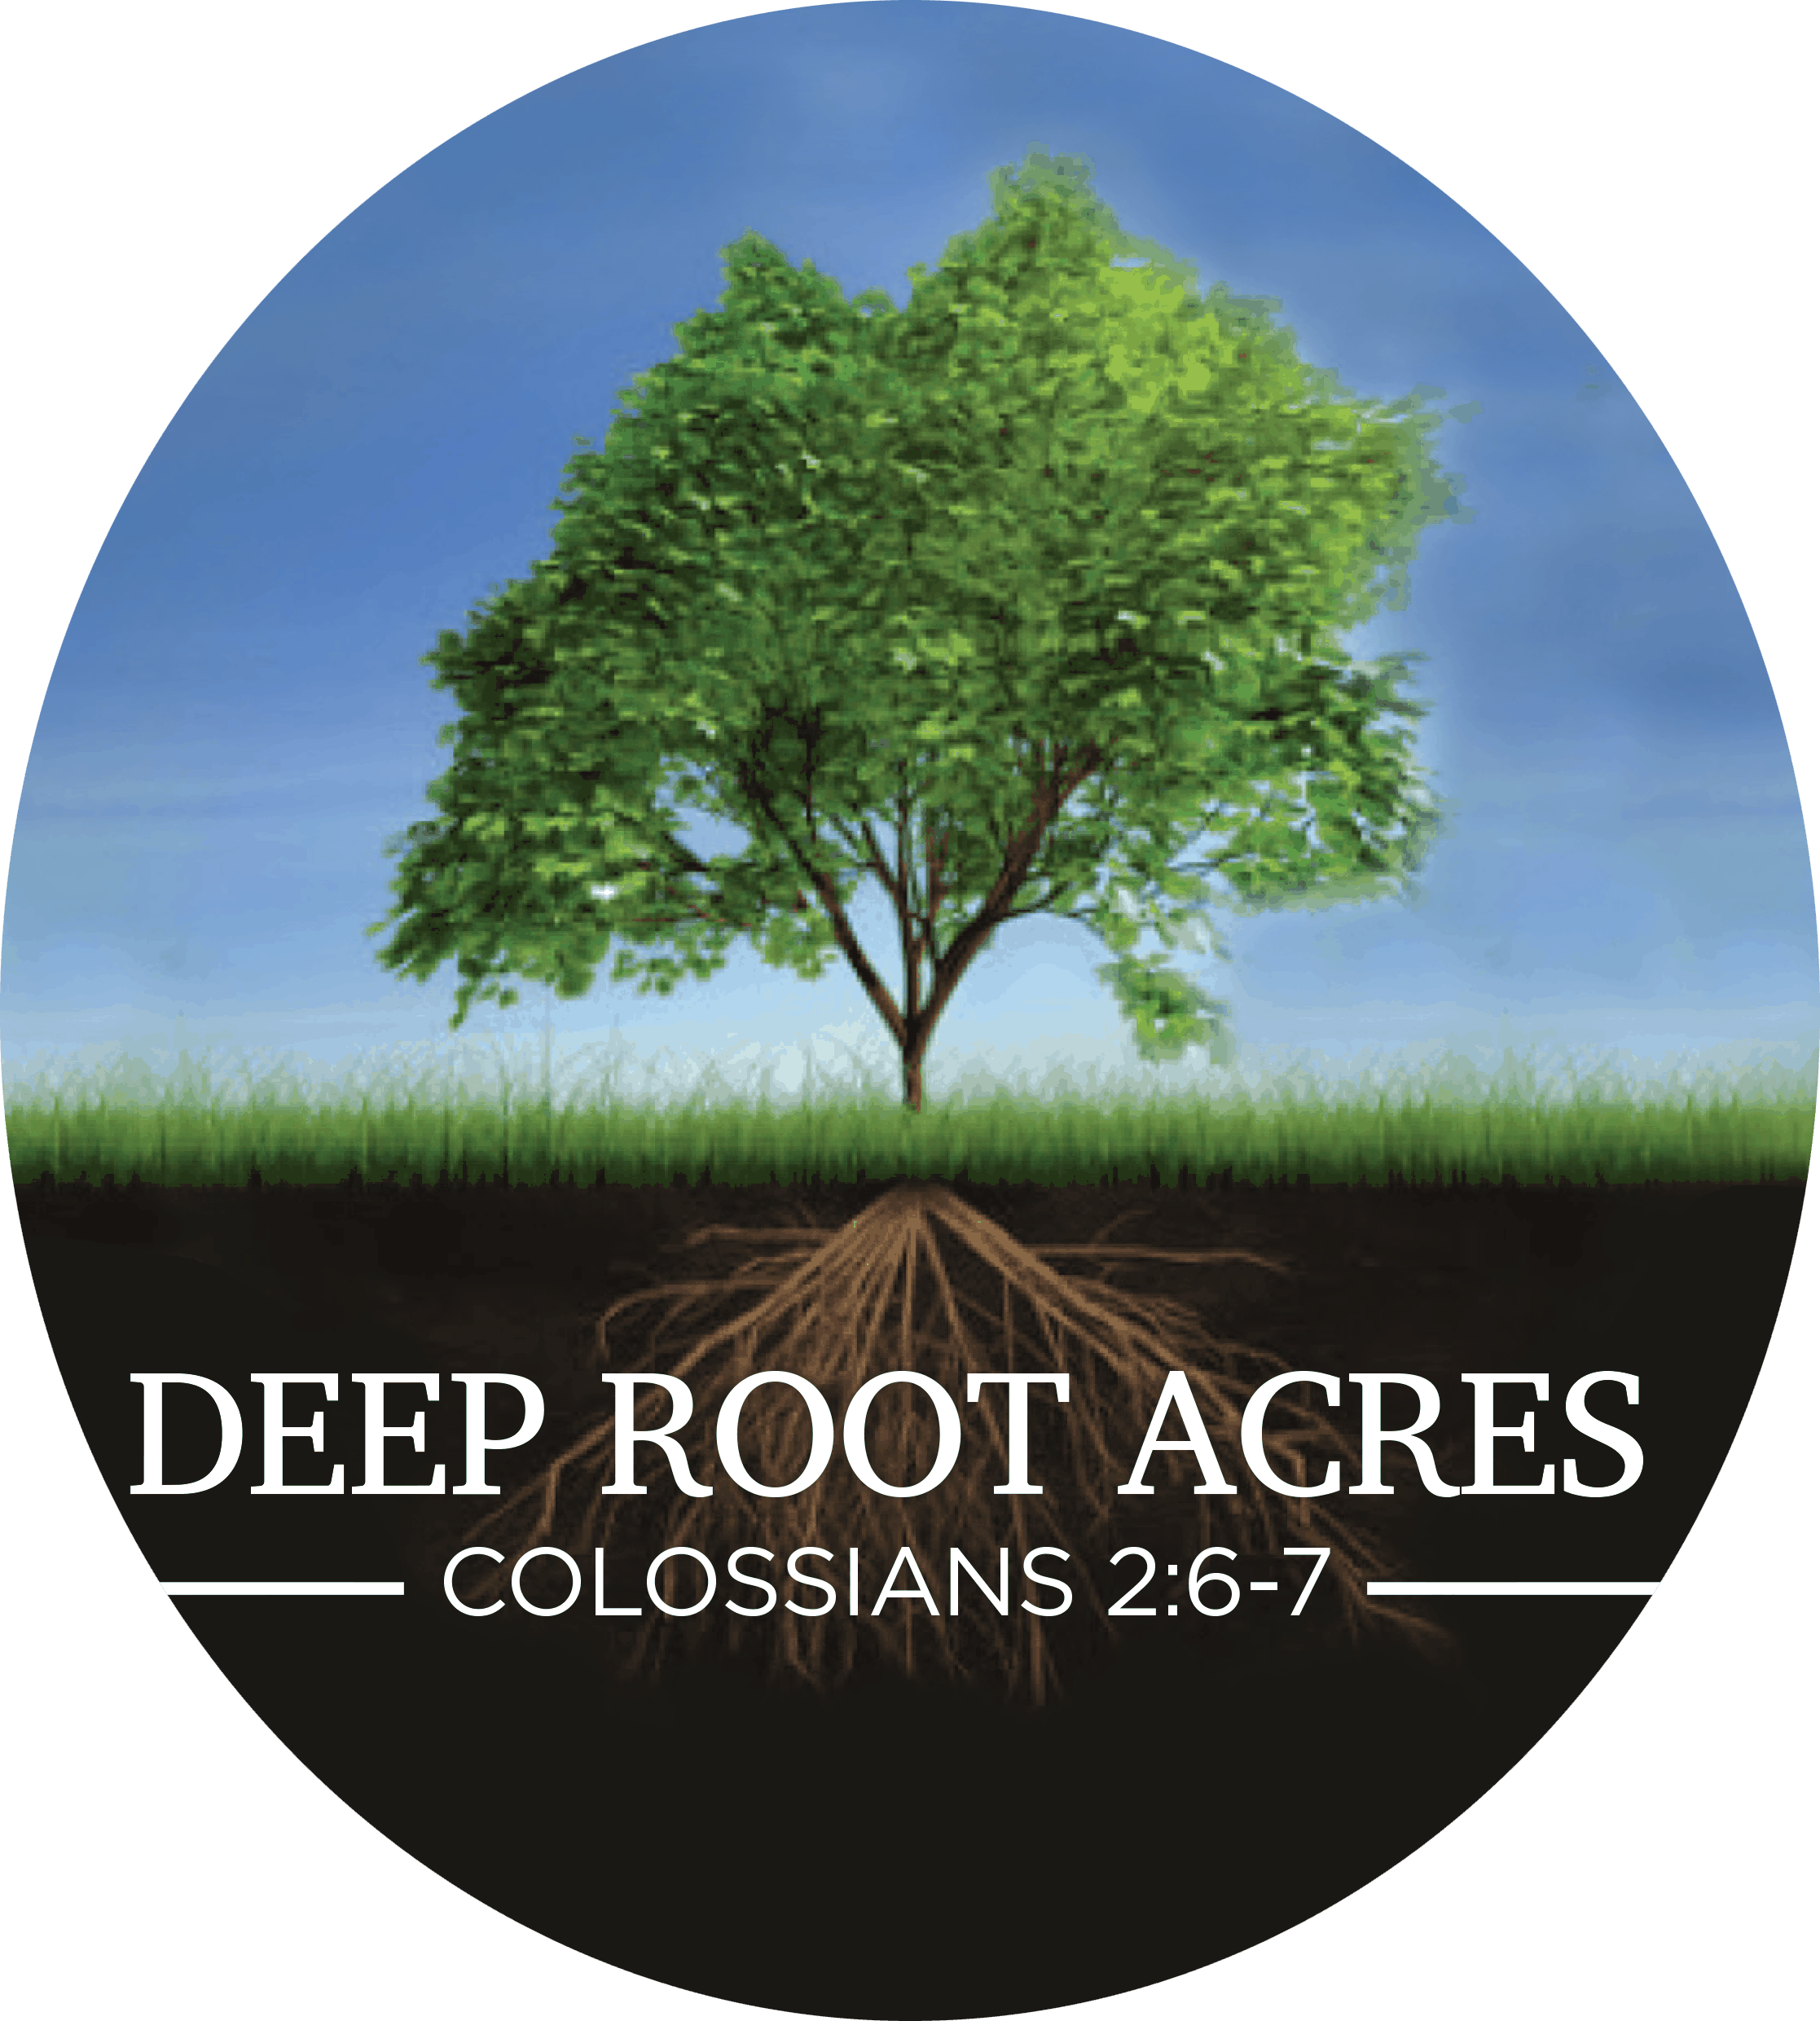 Deep Root Acres